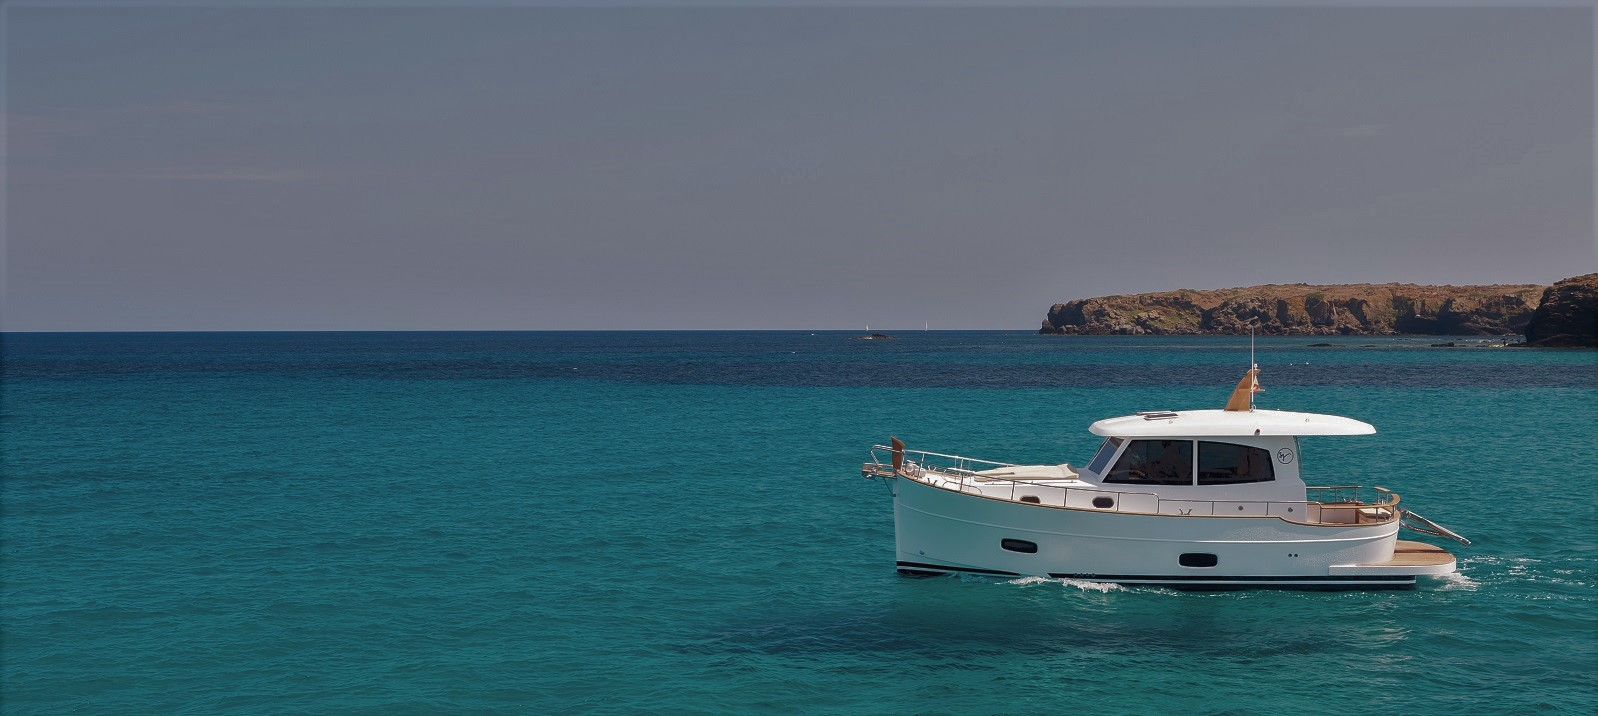 Minorca Islander 34 for sale - profile